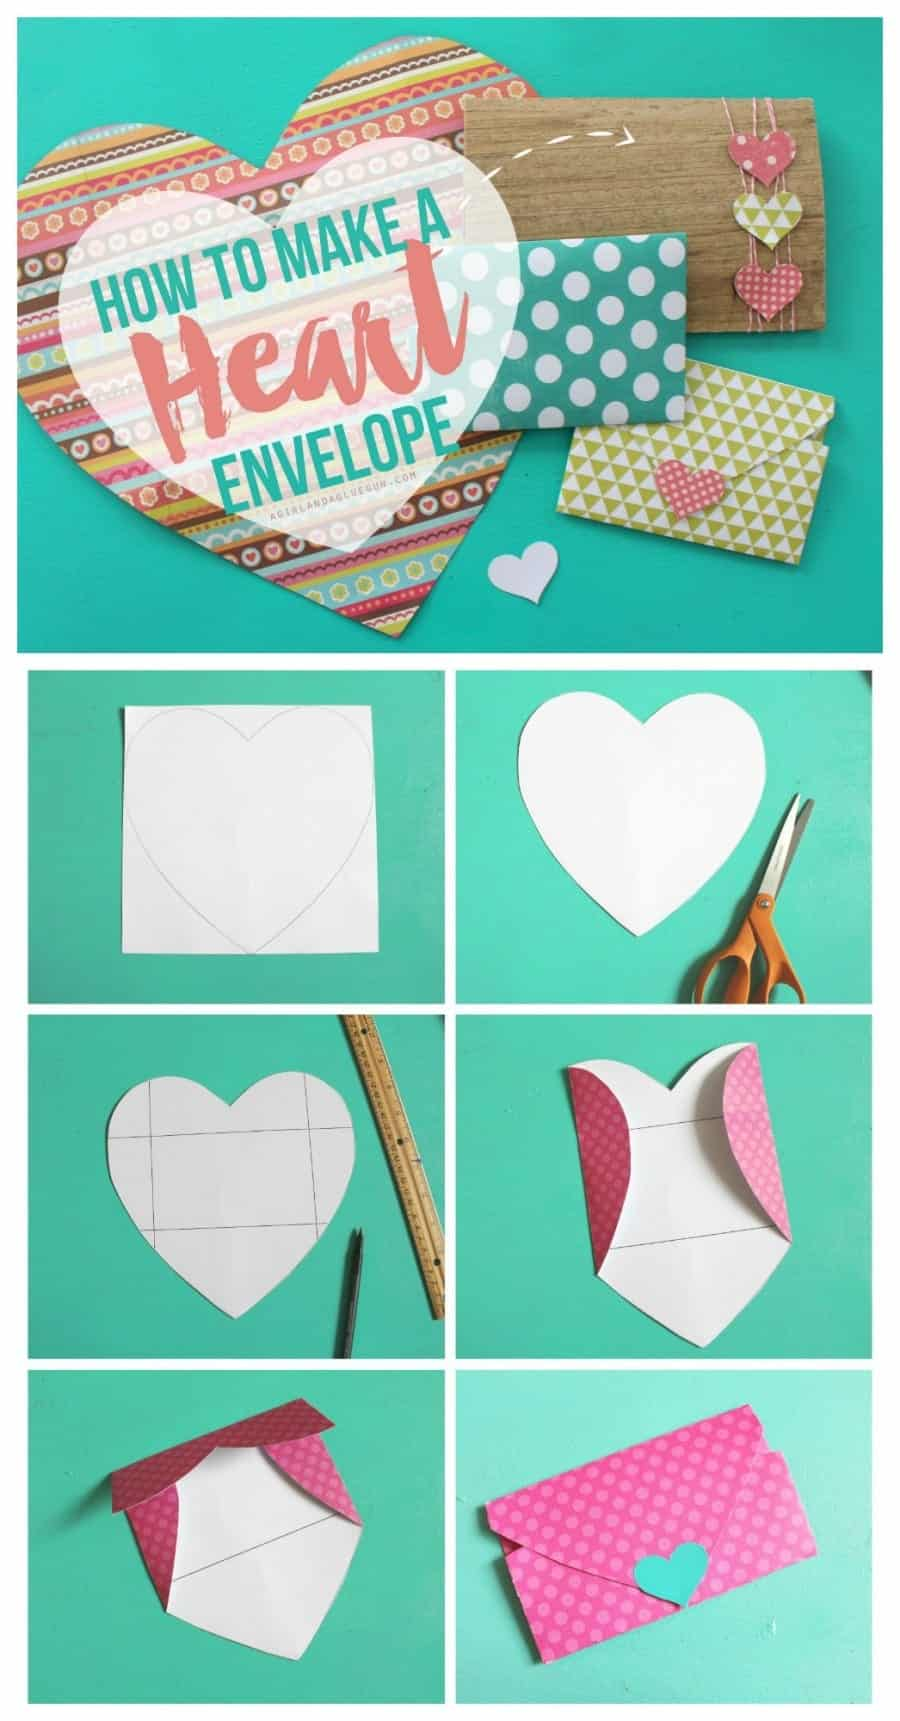 Fullsize Of How To Make A Heart